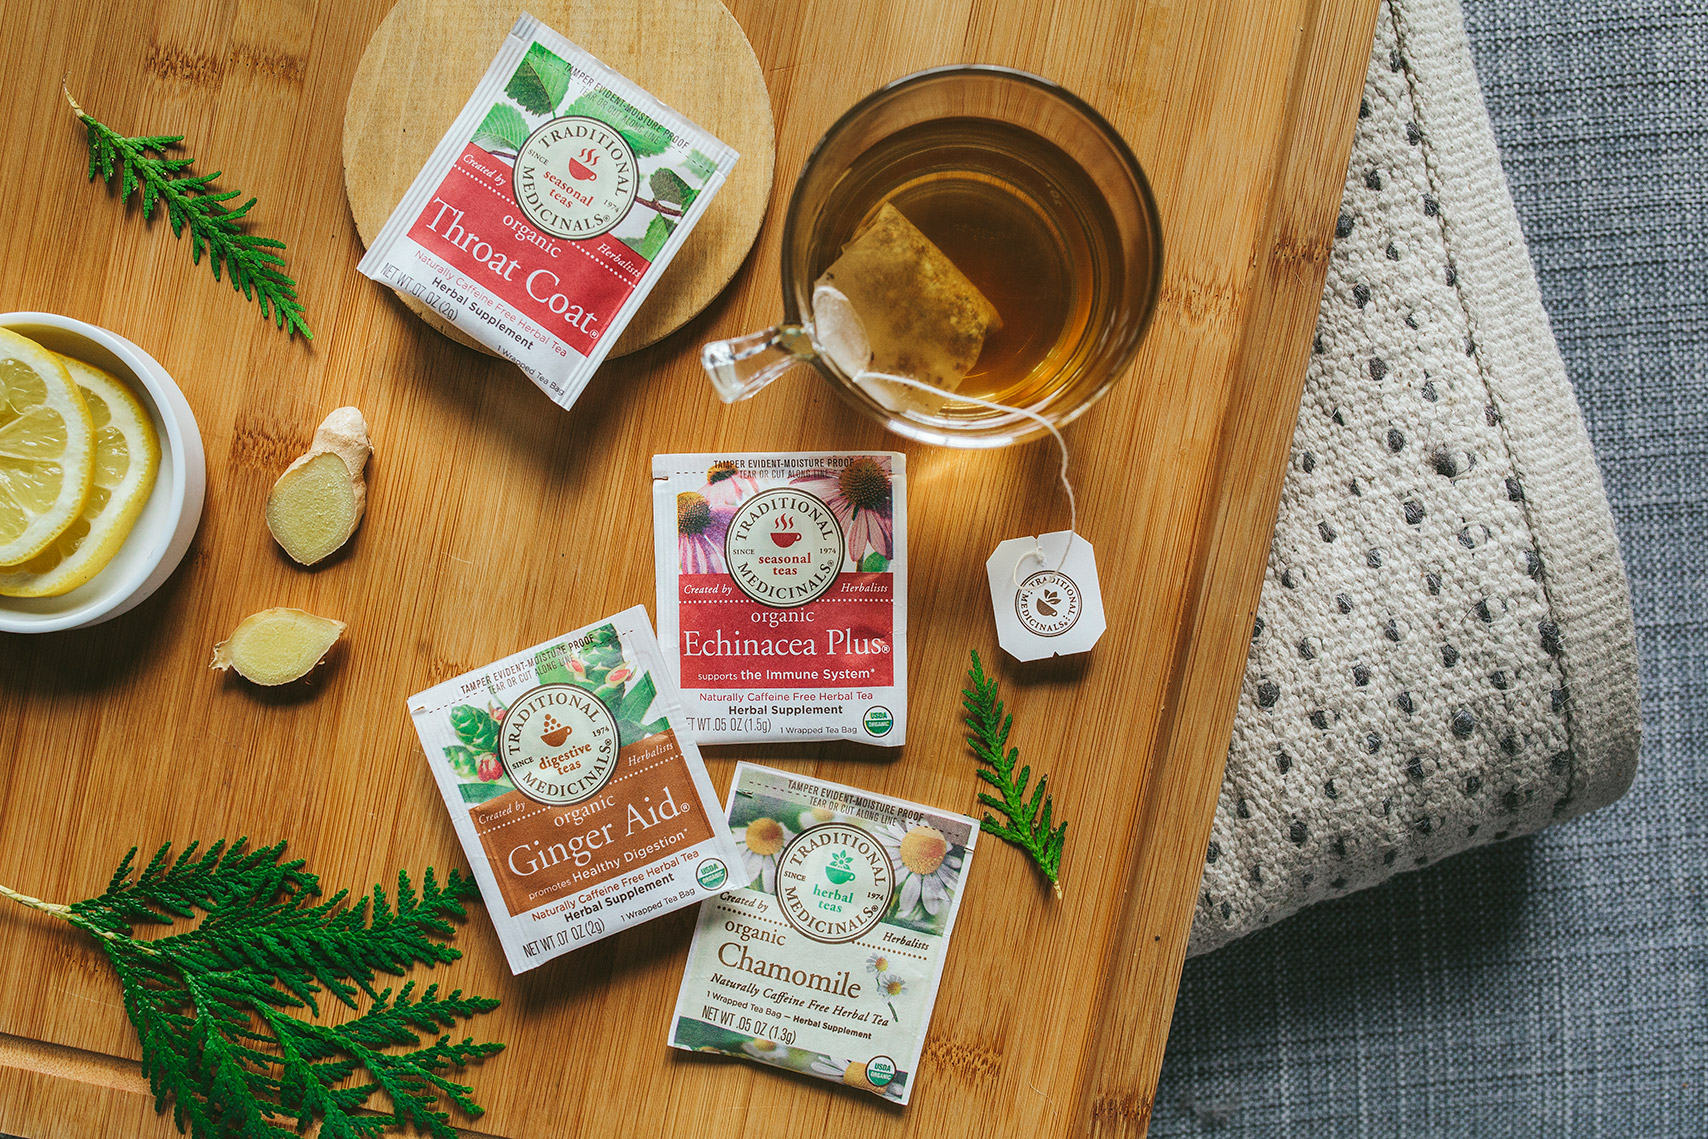 Traditional Medicinals: Plant Power for Winter Wellness.